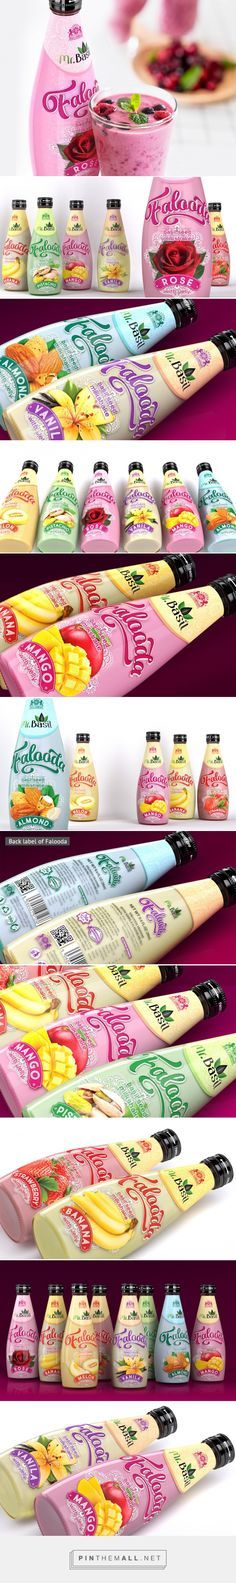 Falooda - Packaging of the World - Creative Package Design Gallery - http://www.packagingoftheworld.com/2017/08/falooda.html